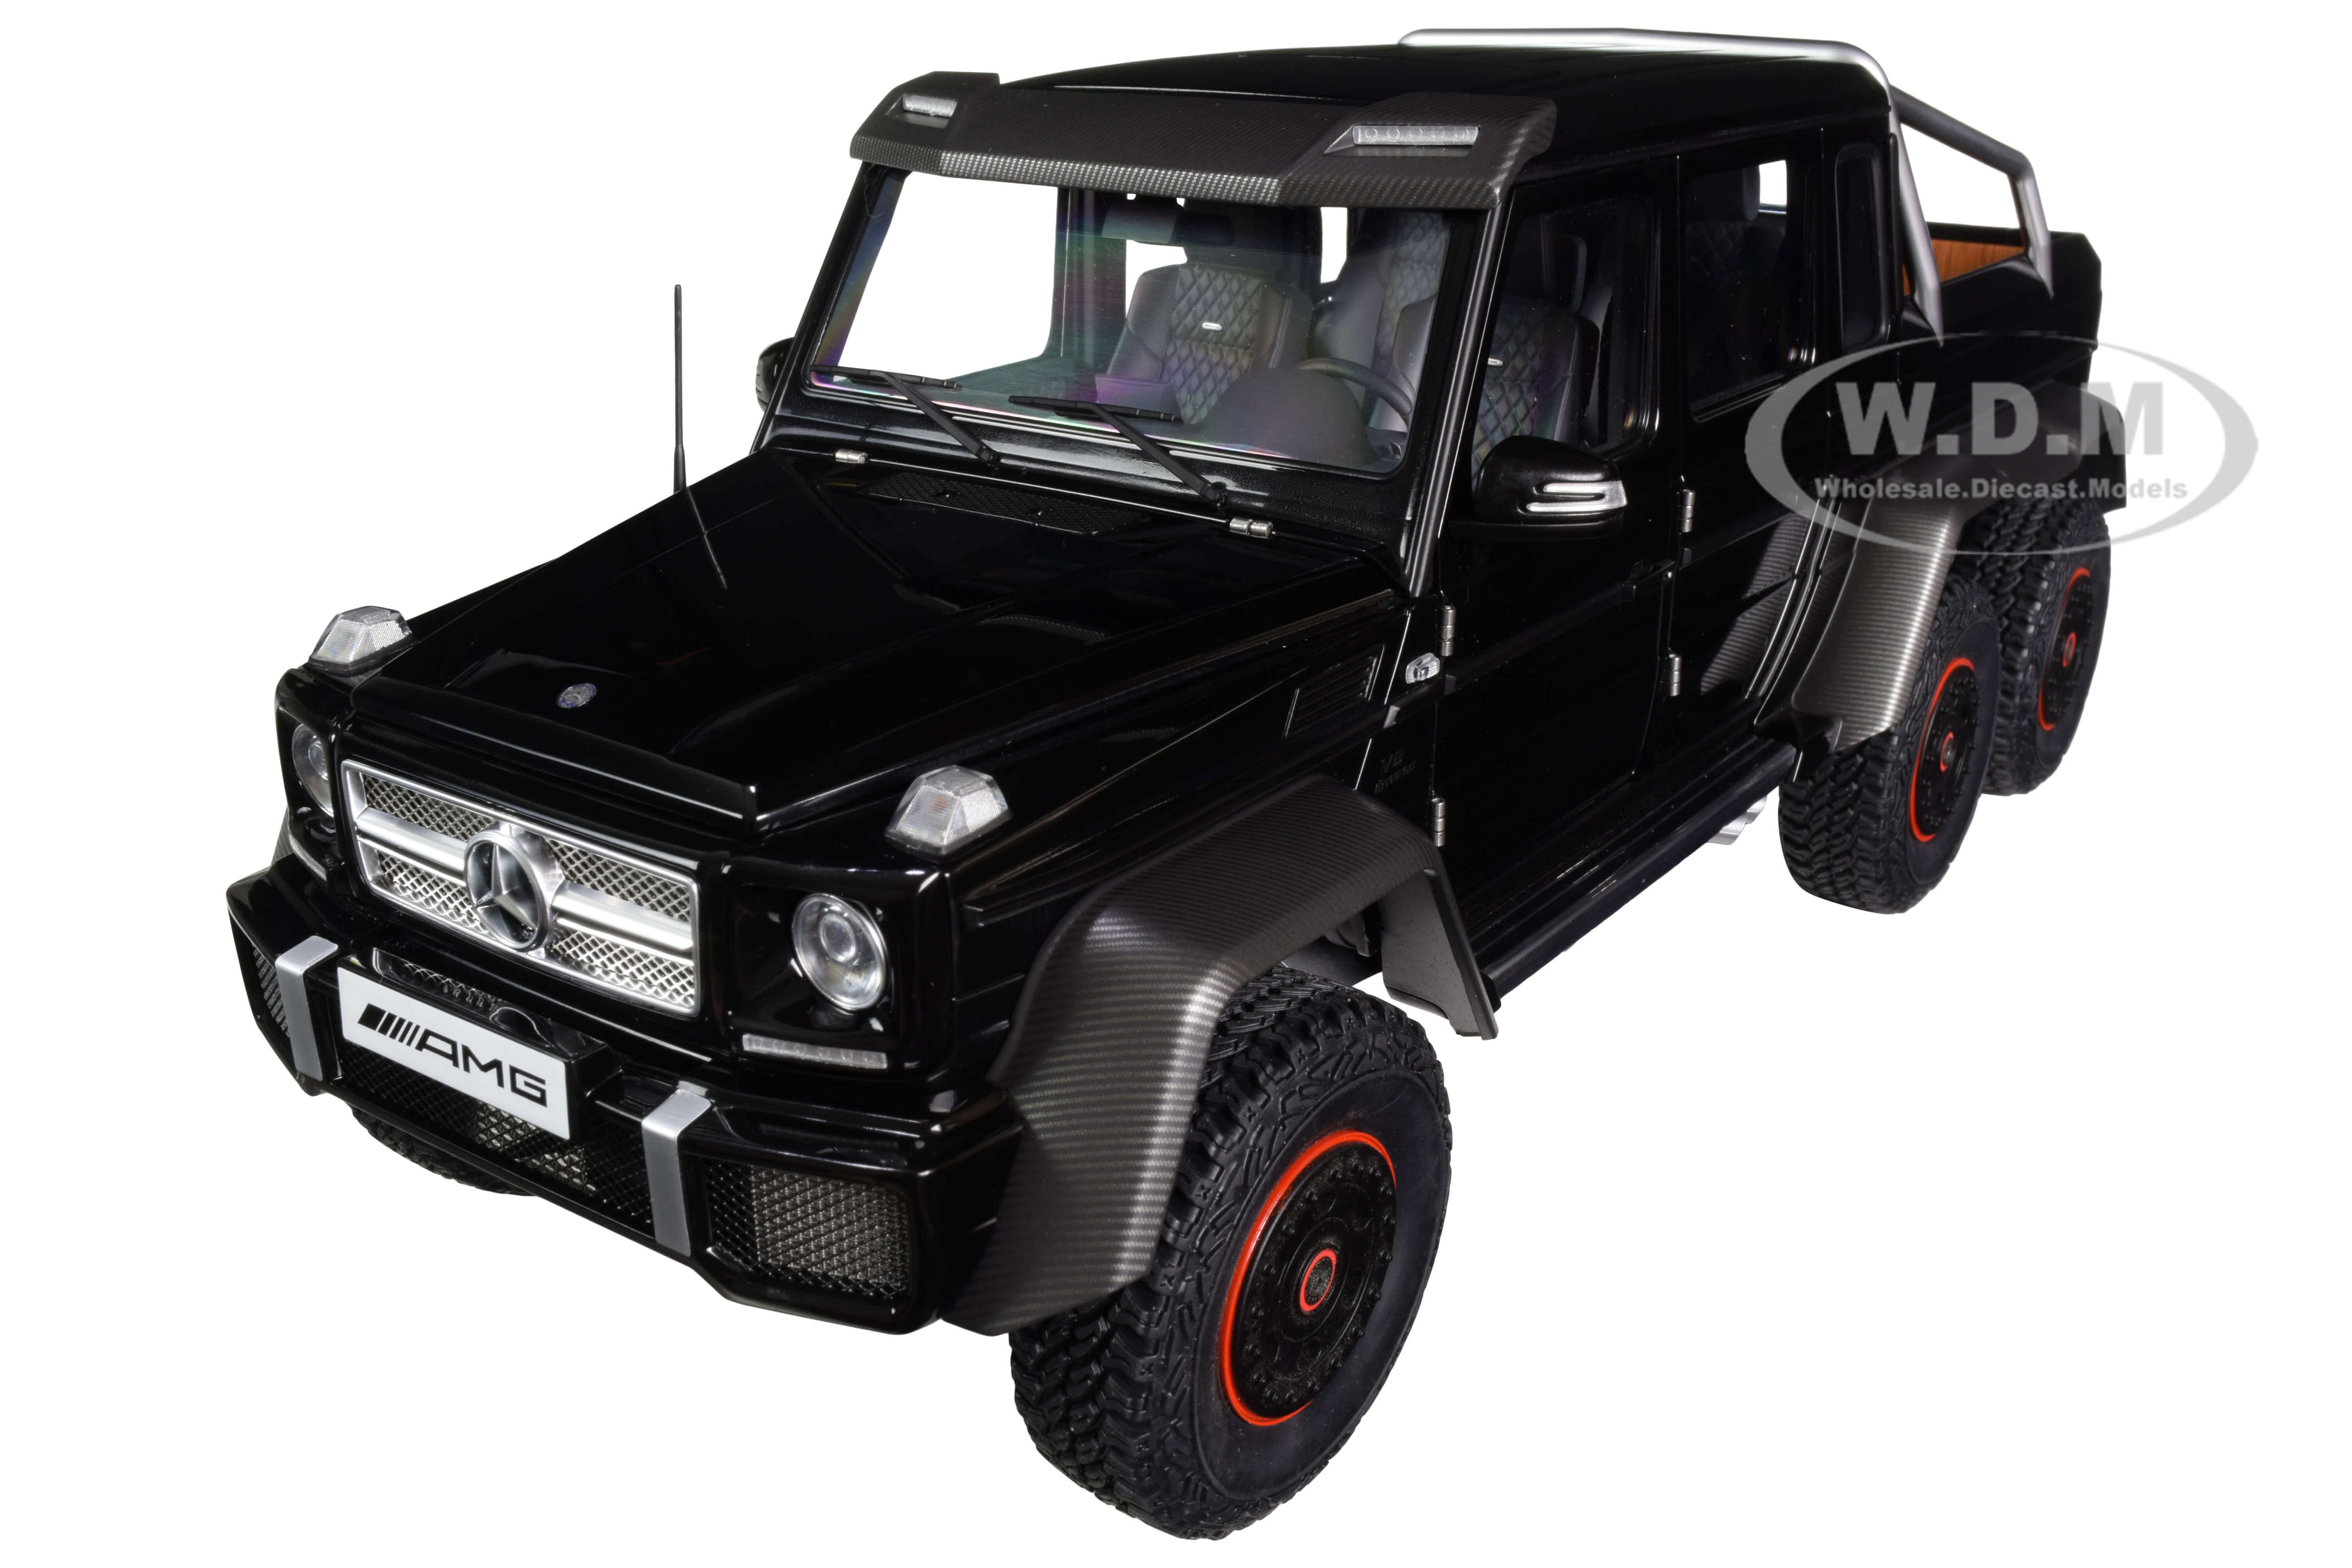 Mercedes Benz G63 AMG 6x6 Gloss Black with Carbon Accents 1/18 Model Car by Autoart